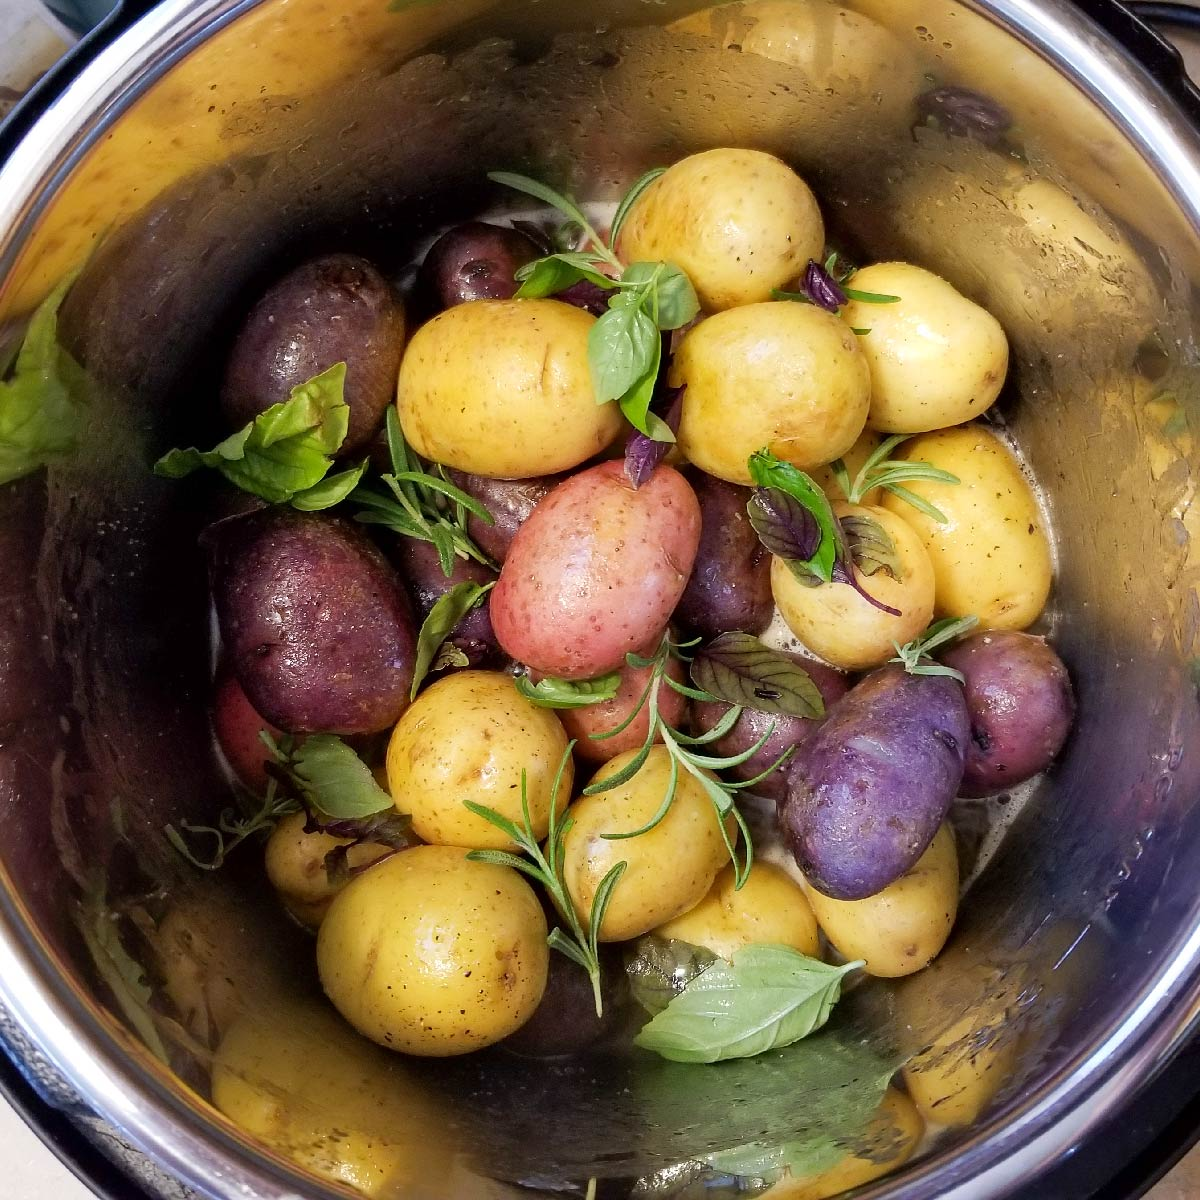 Baby potatoes in the Instant Pot